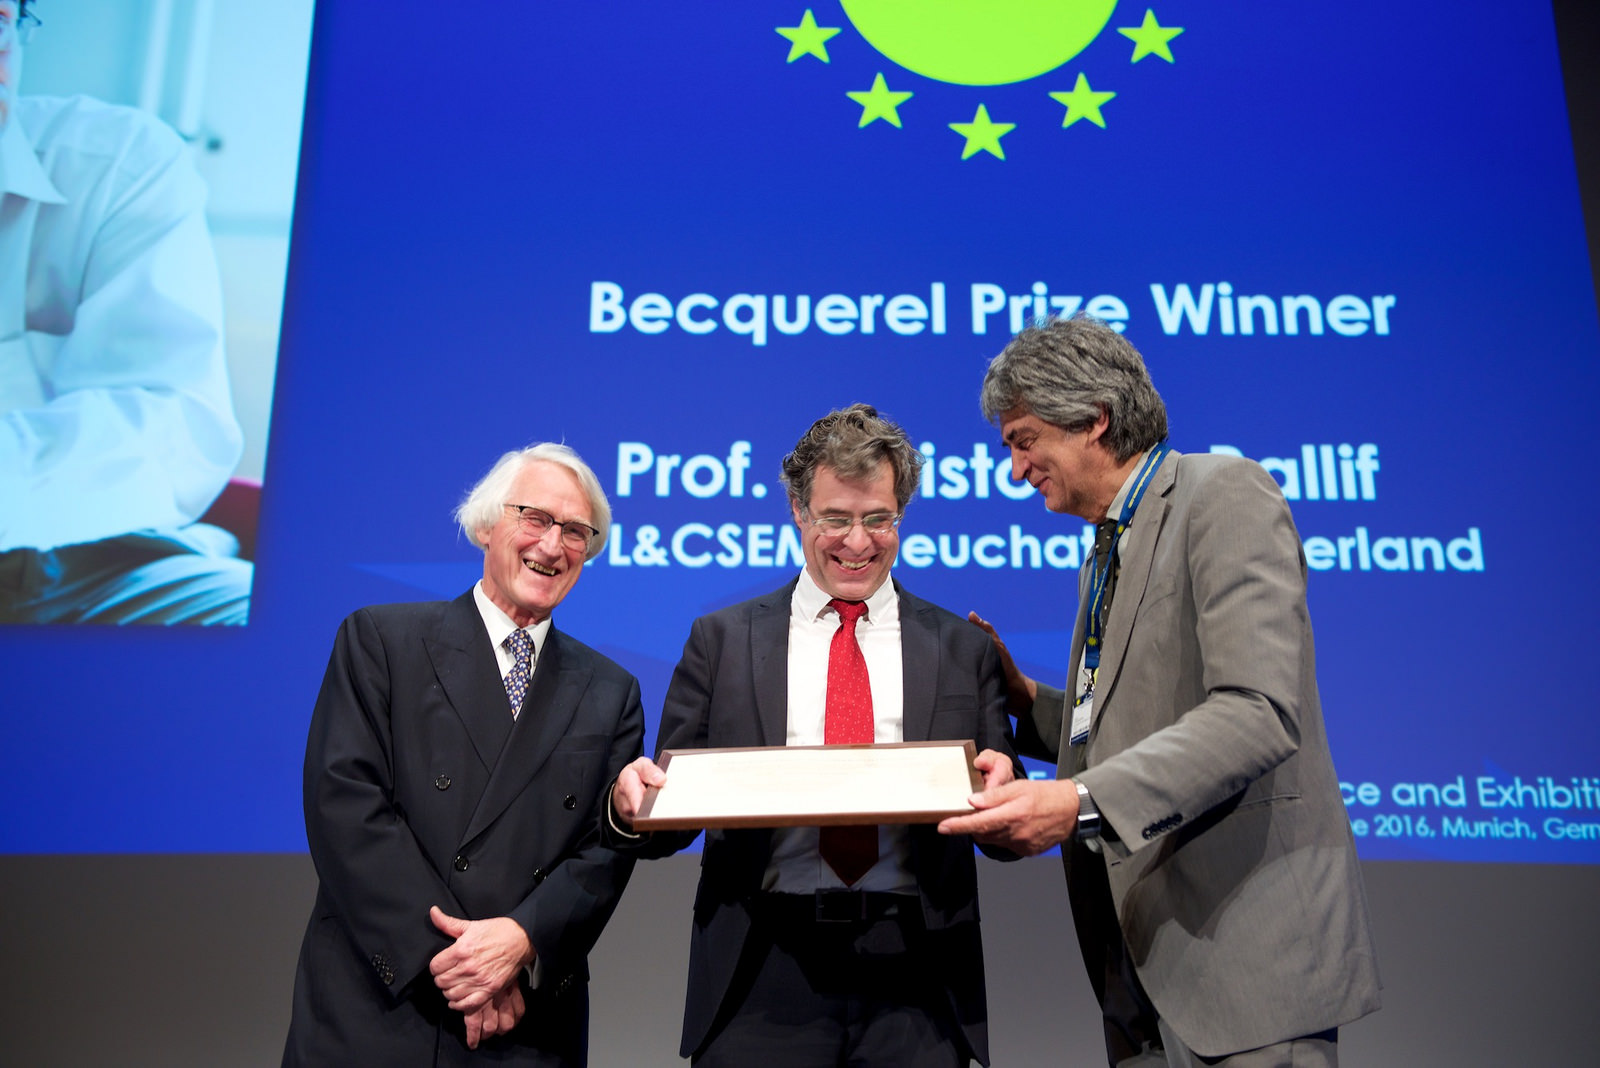 Ballif receiving the prize at the 32nd European Photovoltaic Solar Energy Conference and Exhibition (EUPVSEC). Source: Flickr - EU PVSEC